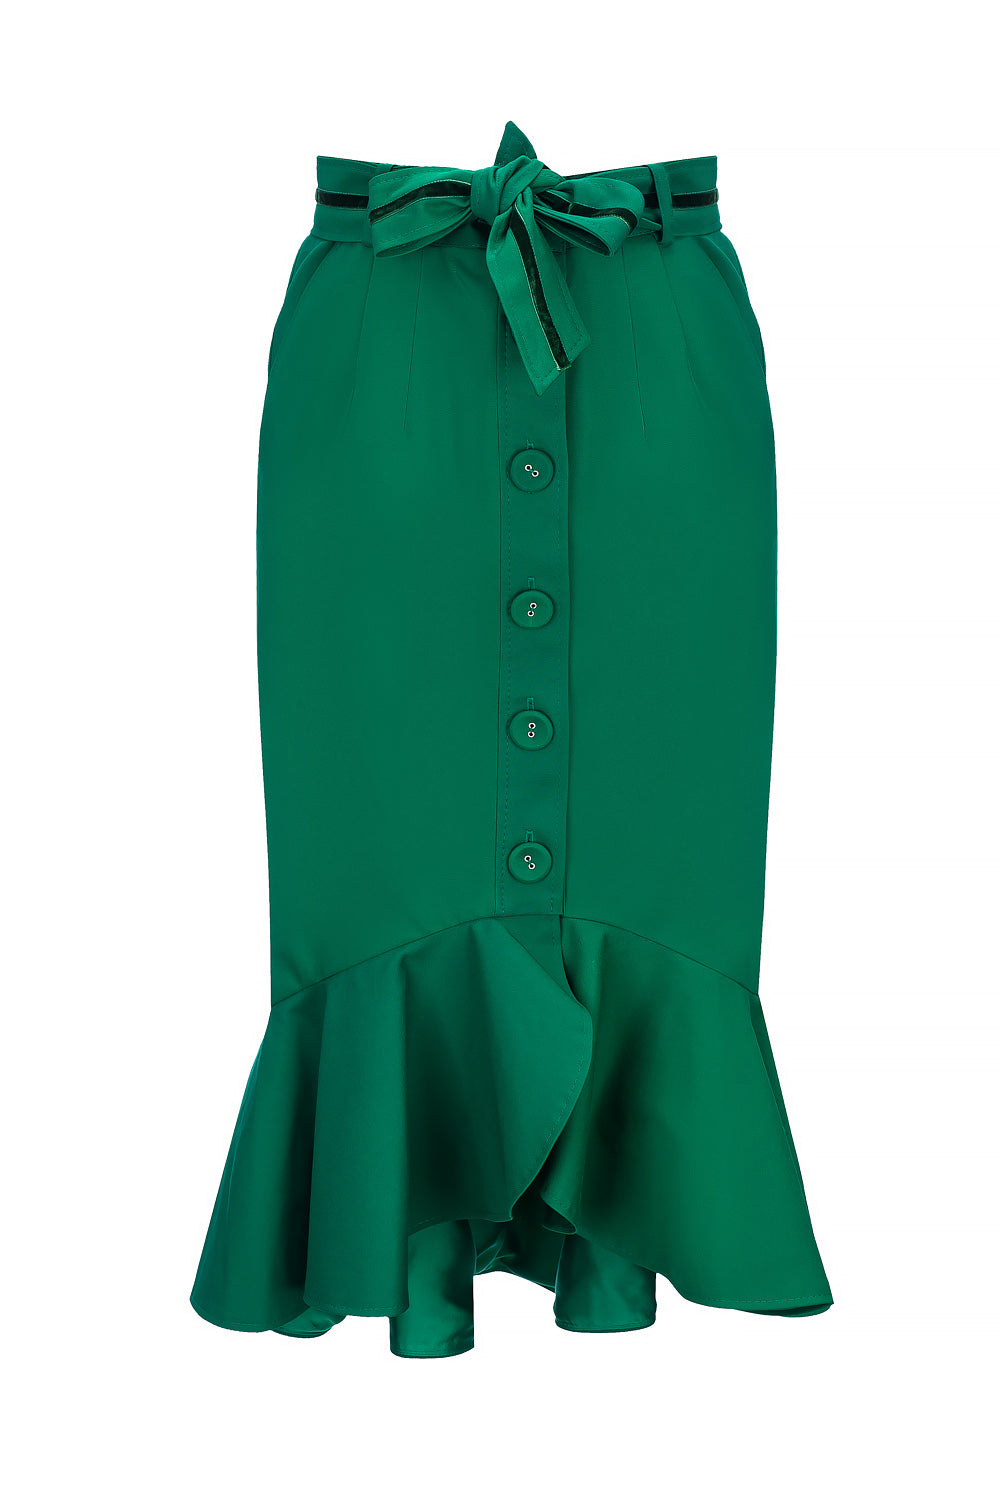 green cotton skirt by andreeva